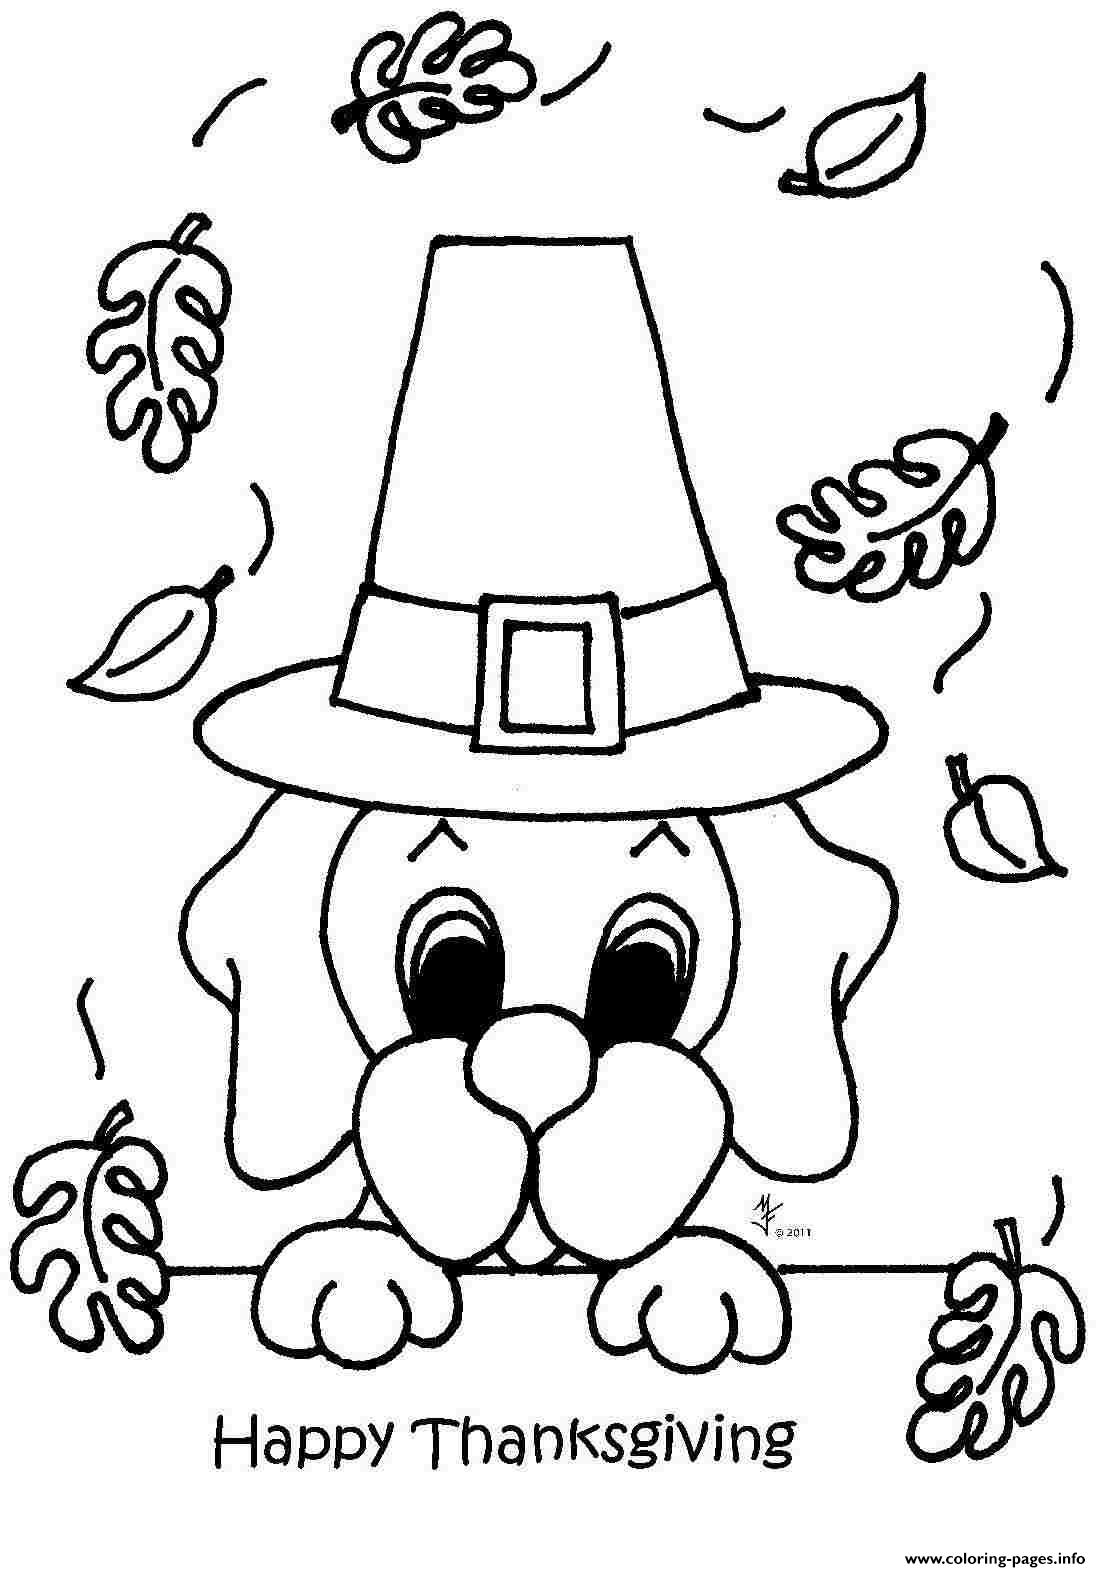 - Happy Thanksgiving Cute Dog Coloring Pages Printable